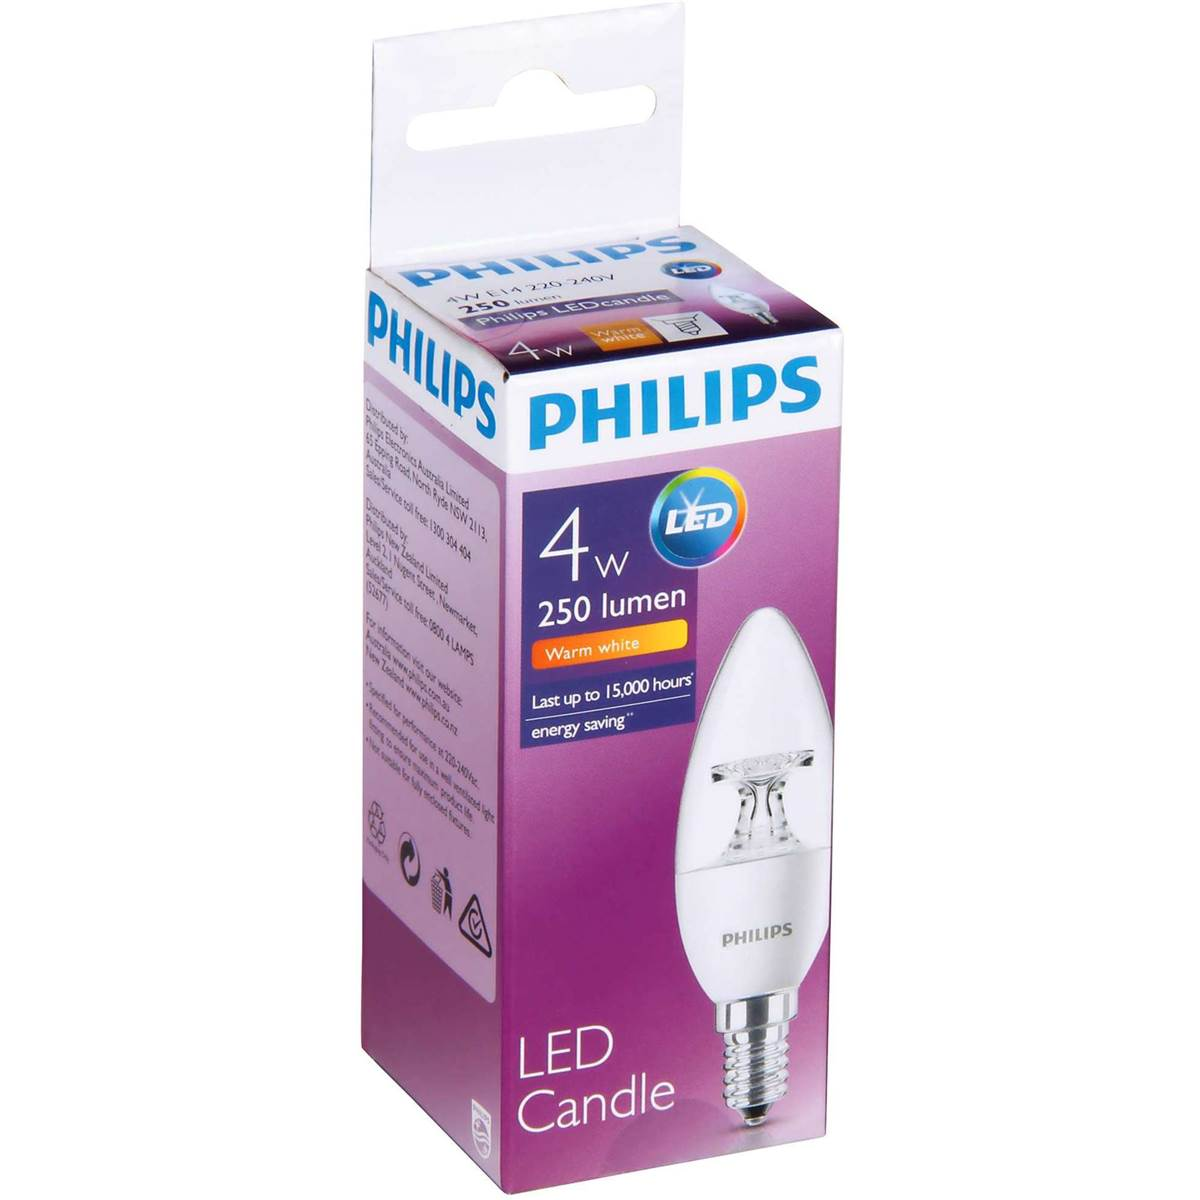 E14 Led Philips Philips Led 25lm Candle E14 B35 Each Woolworths